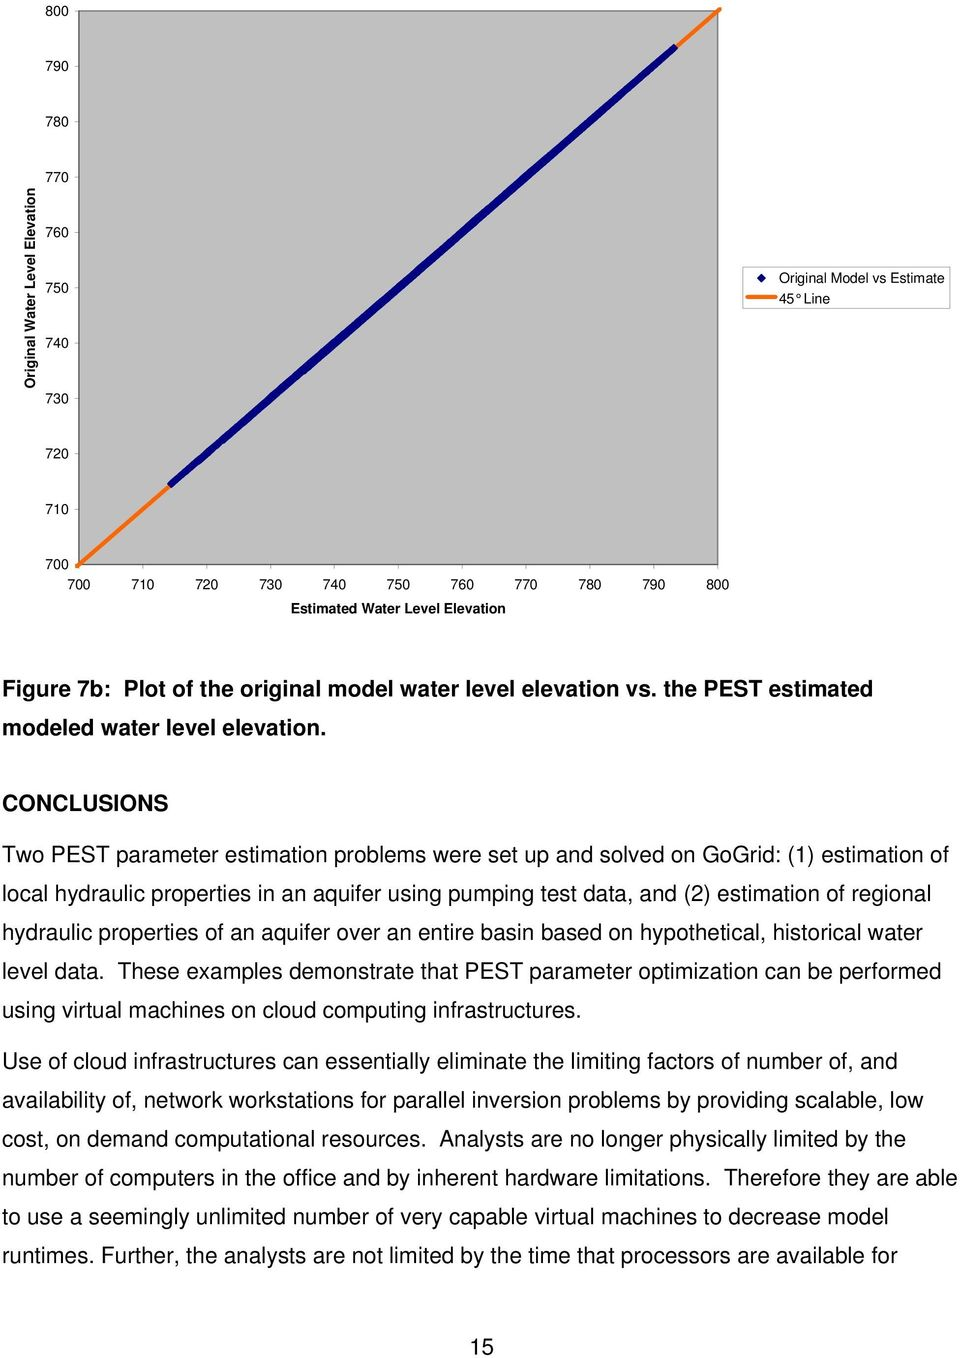 CONCLUSIONS Two PEST parameter estimation problems were set up and solved on GoGrid: (1) estimation of local hydraulic properties in an aquifer using pumping test data, and (2) estimation of regional